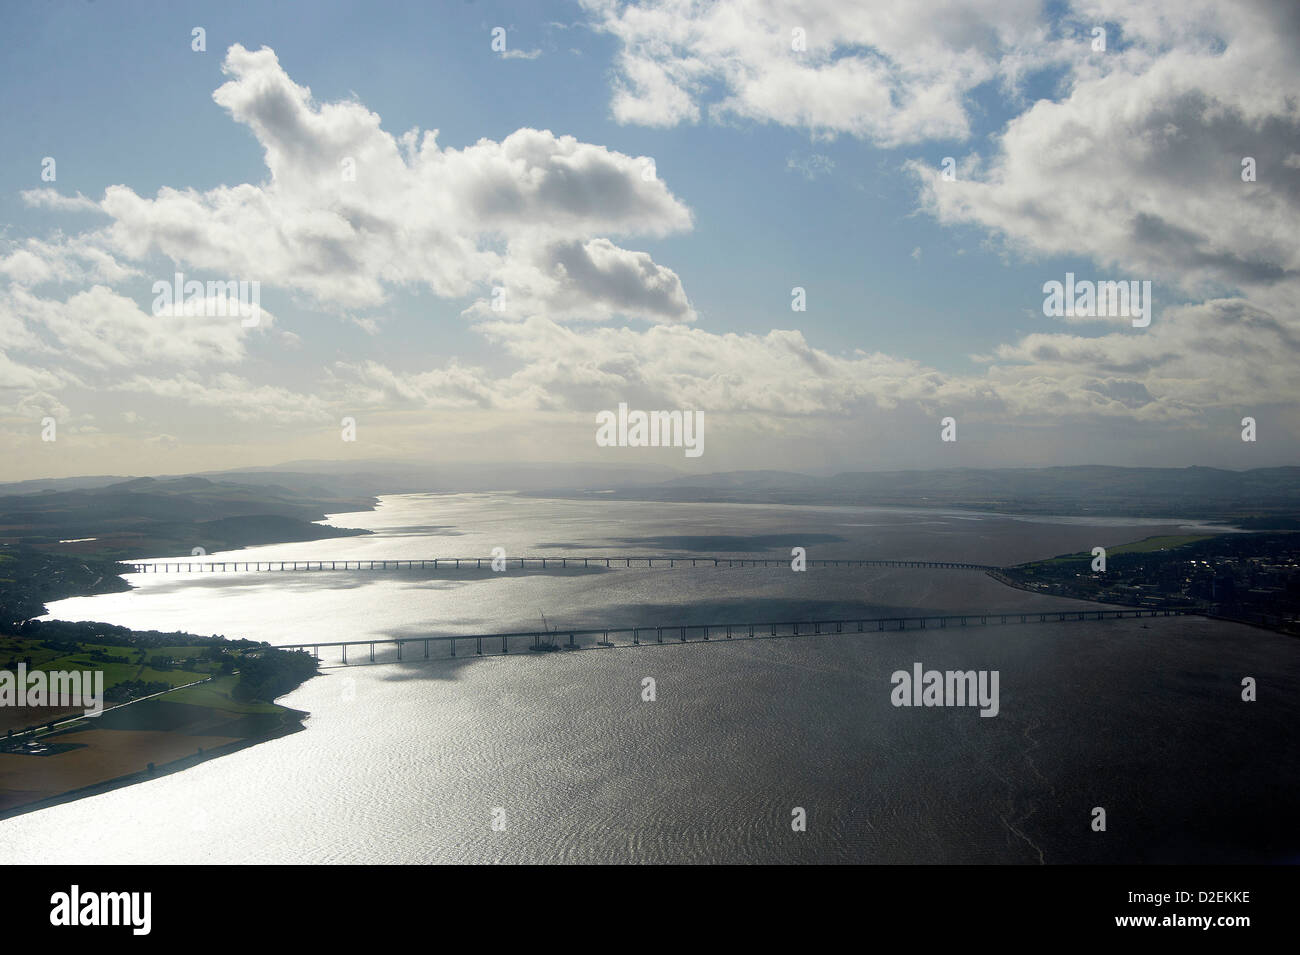 The River Tay from the air at Dundee, the road bridge in the foreground and the rial bridge behind, looking up river - Stock Image